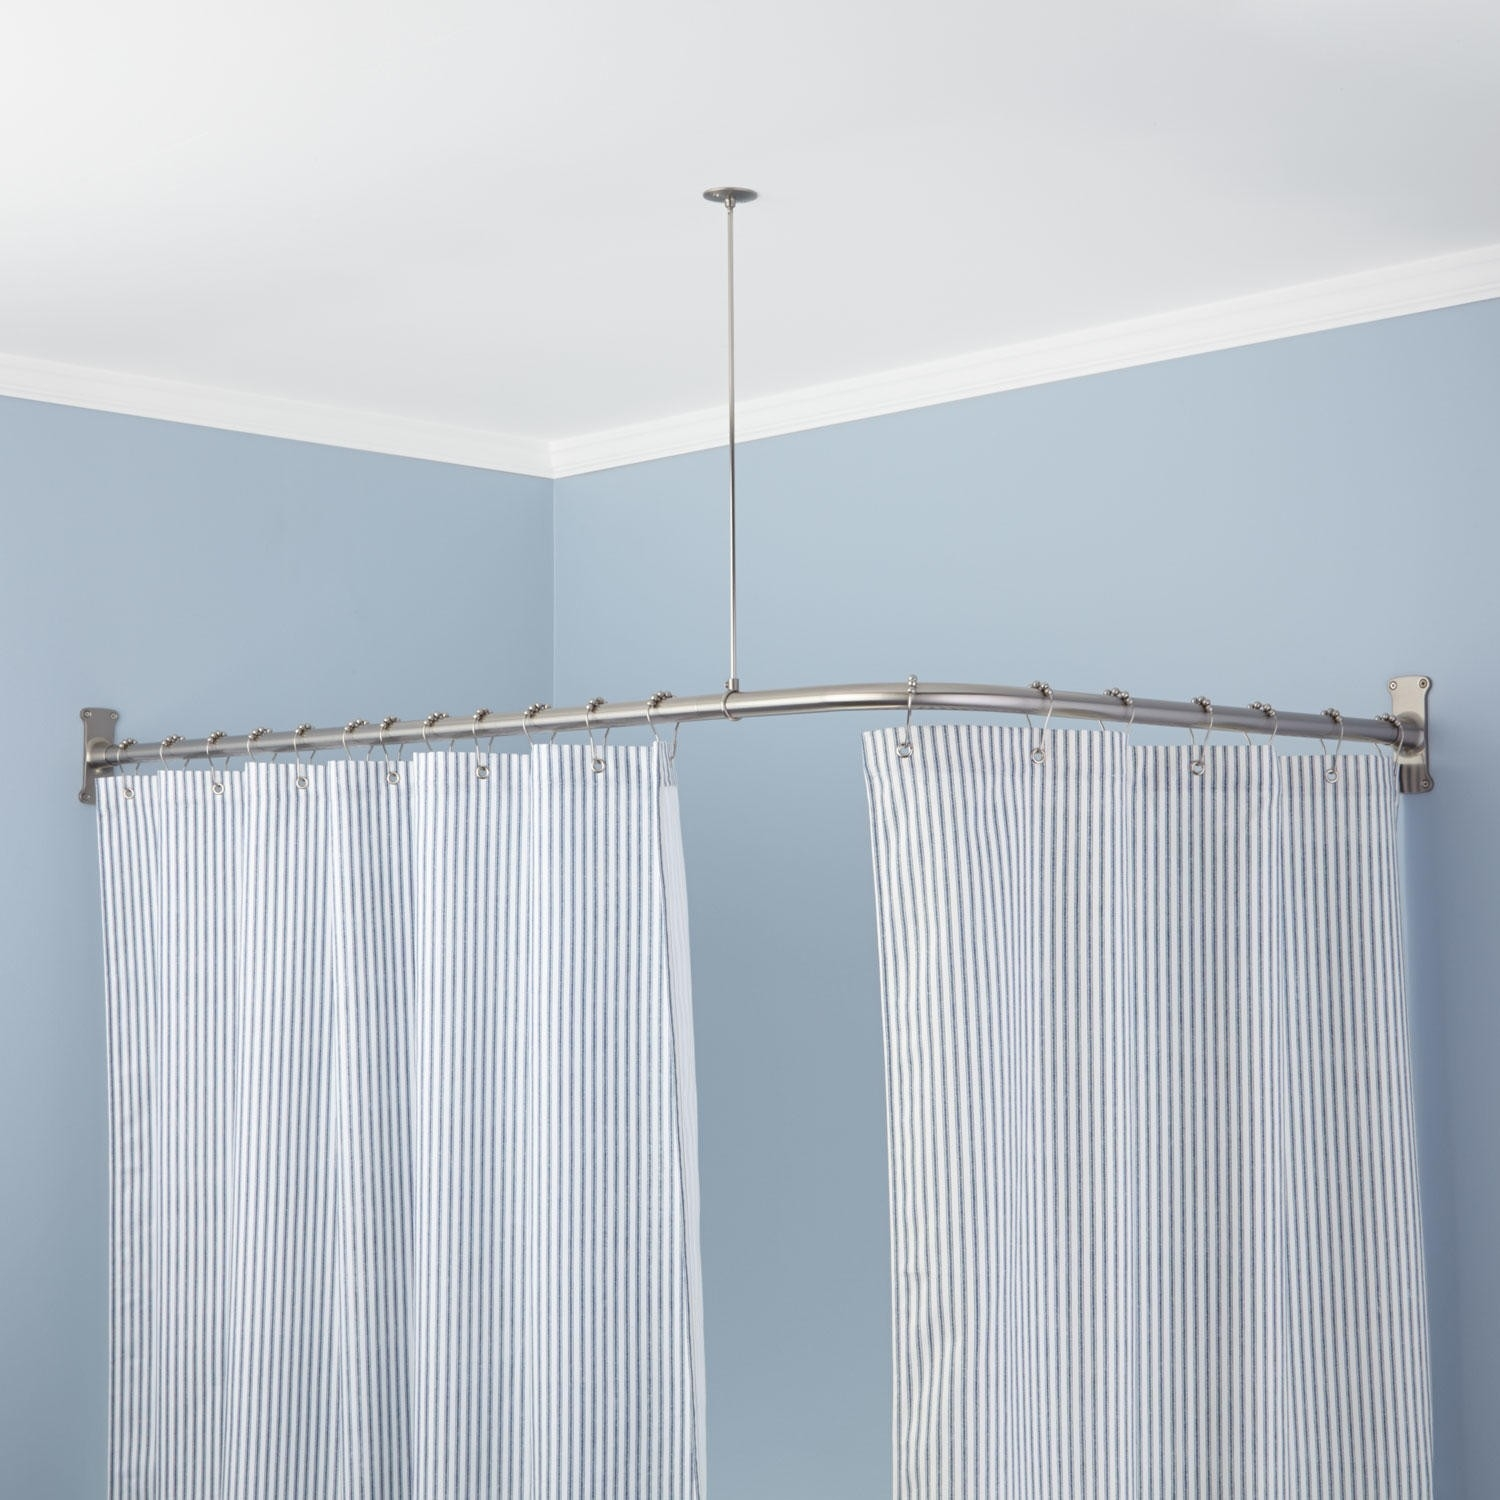 Extra Heavy Corner Shower Curtain Rod In Powder Black For The Inside L Shaped Shower Curtain Rods (Image 7 of 25)